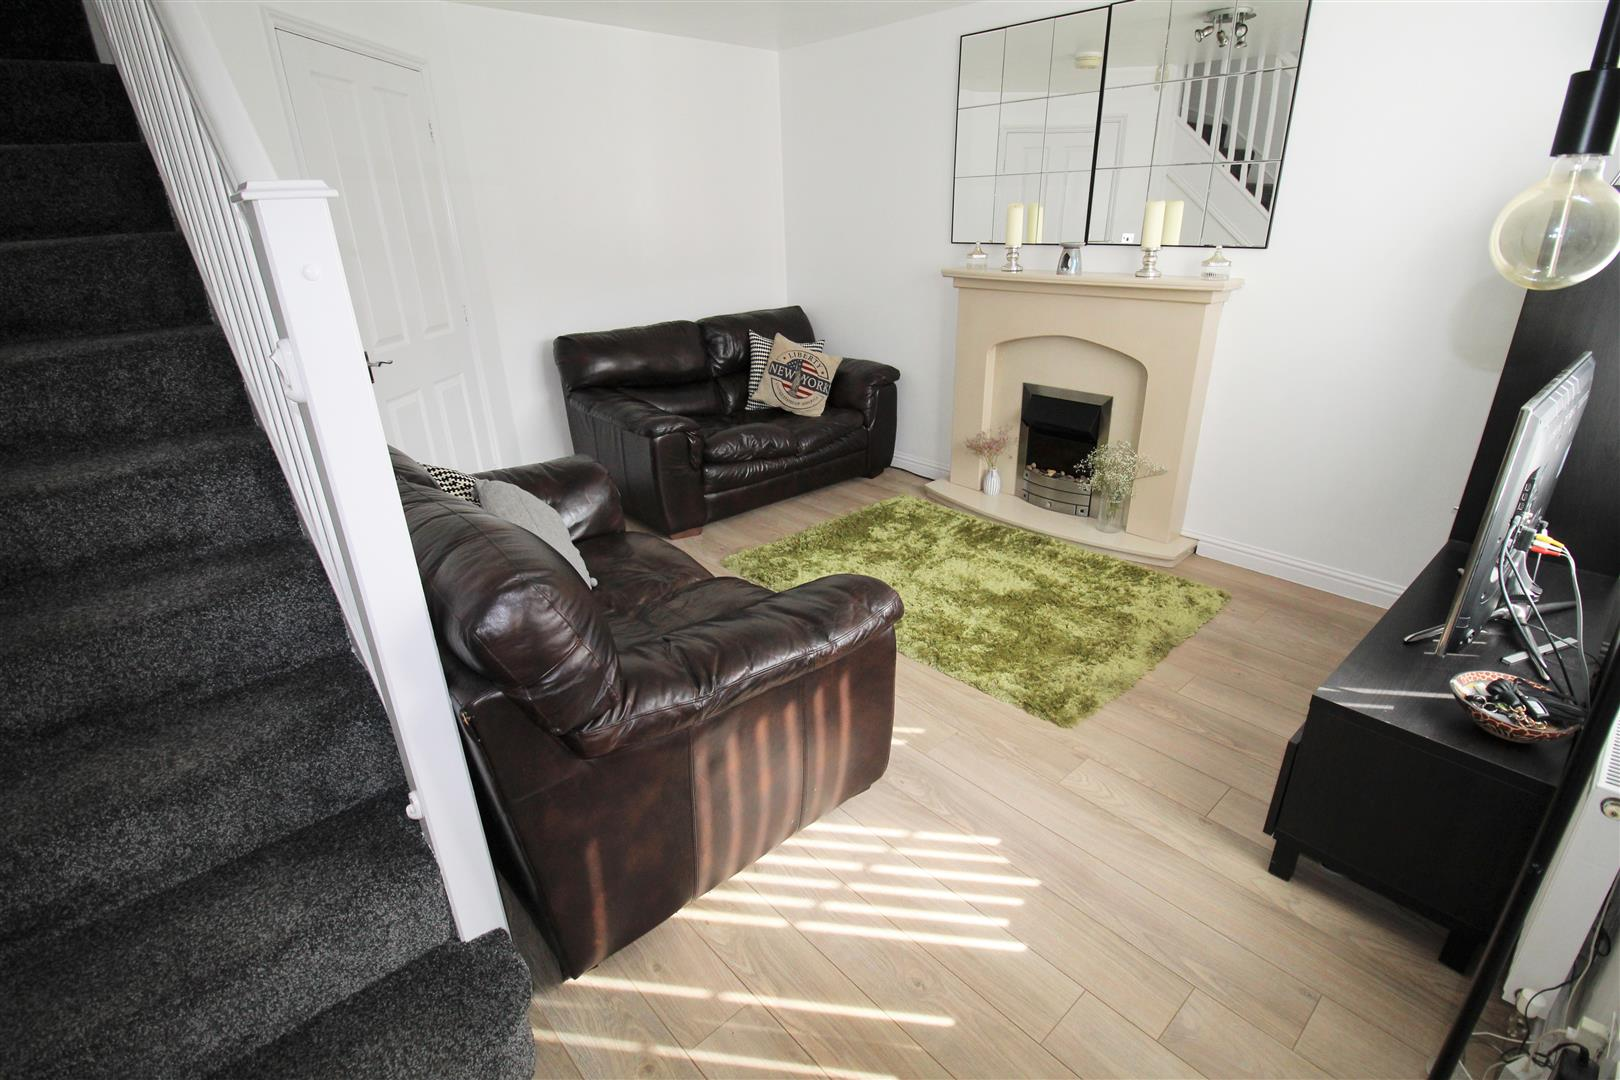 2 Bedrooms, House - Townhouse, Primary Avenue, Bootle